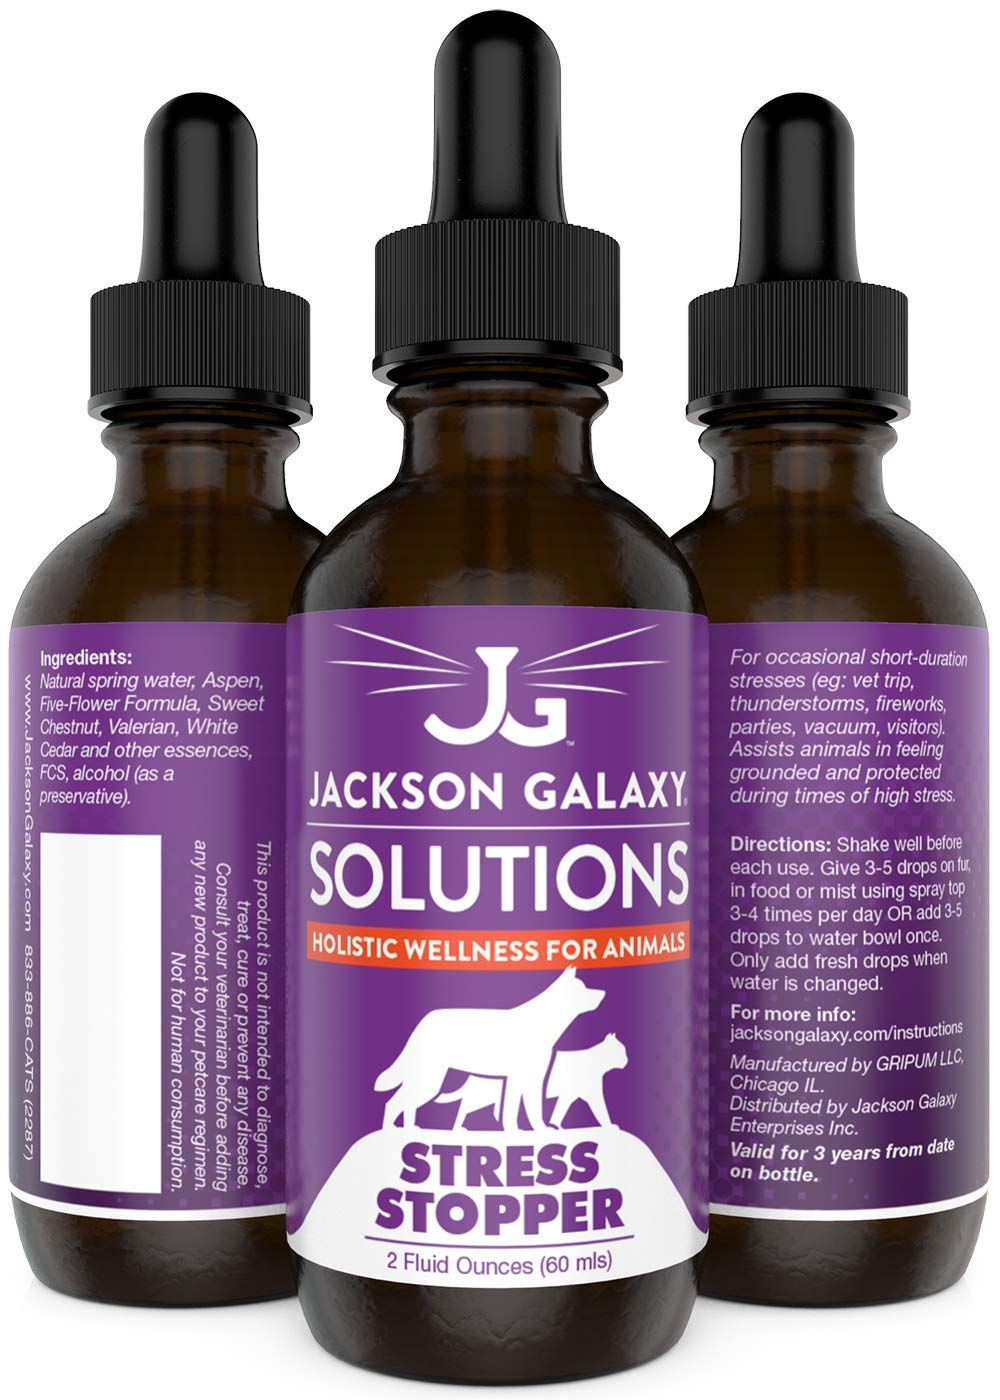 Jackson Galaxy: Stress Stopper (2 oz.) - Pet Solution - Promotes Sense of Safety During Short-Term Stress - Can Keep Pet Calm and Grounded - All-Natural Formula - Reiki Energy by Jackson Galaxy